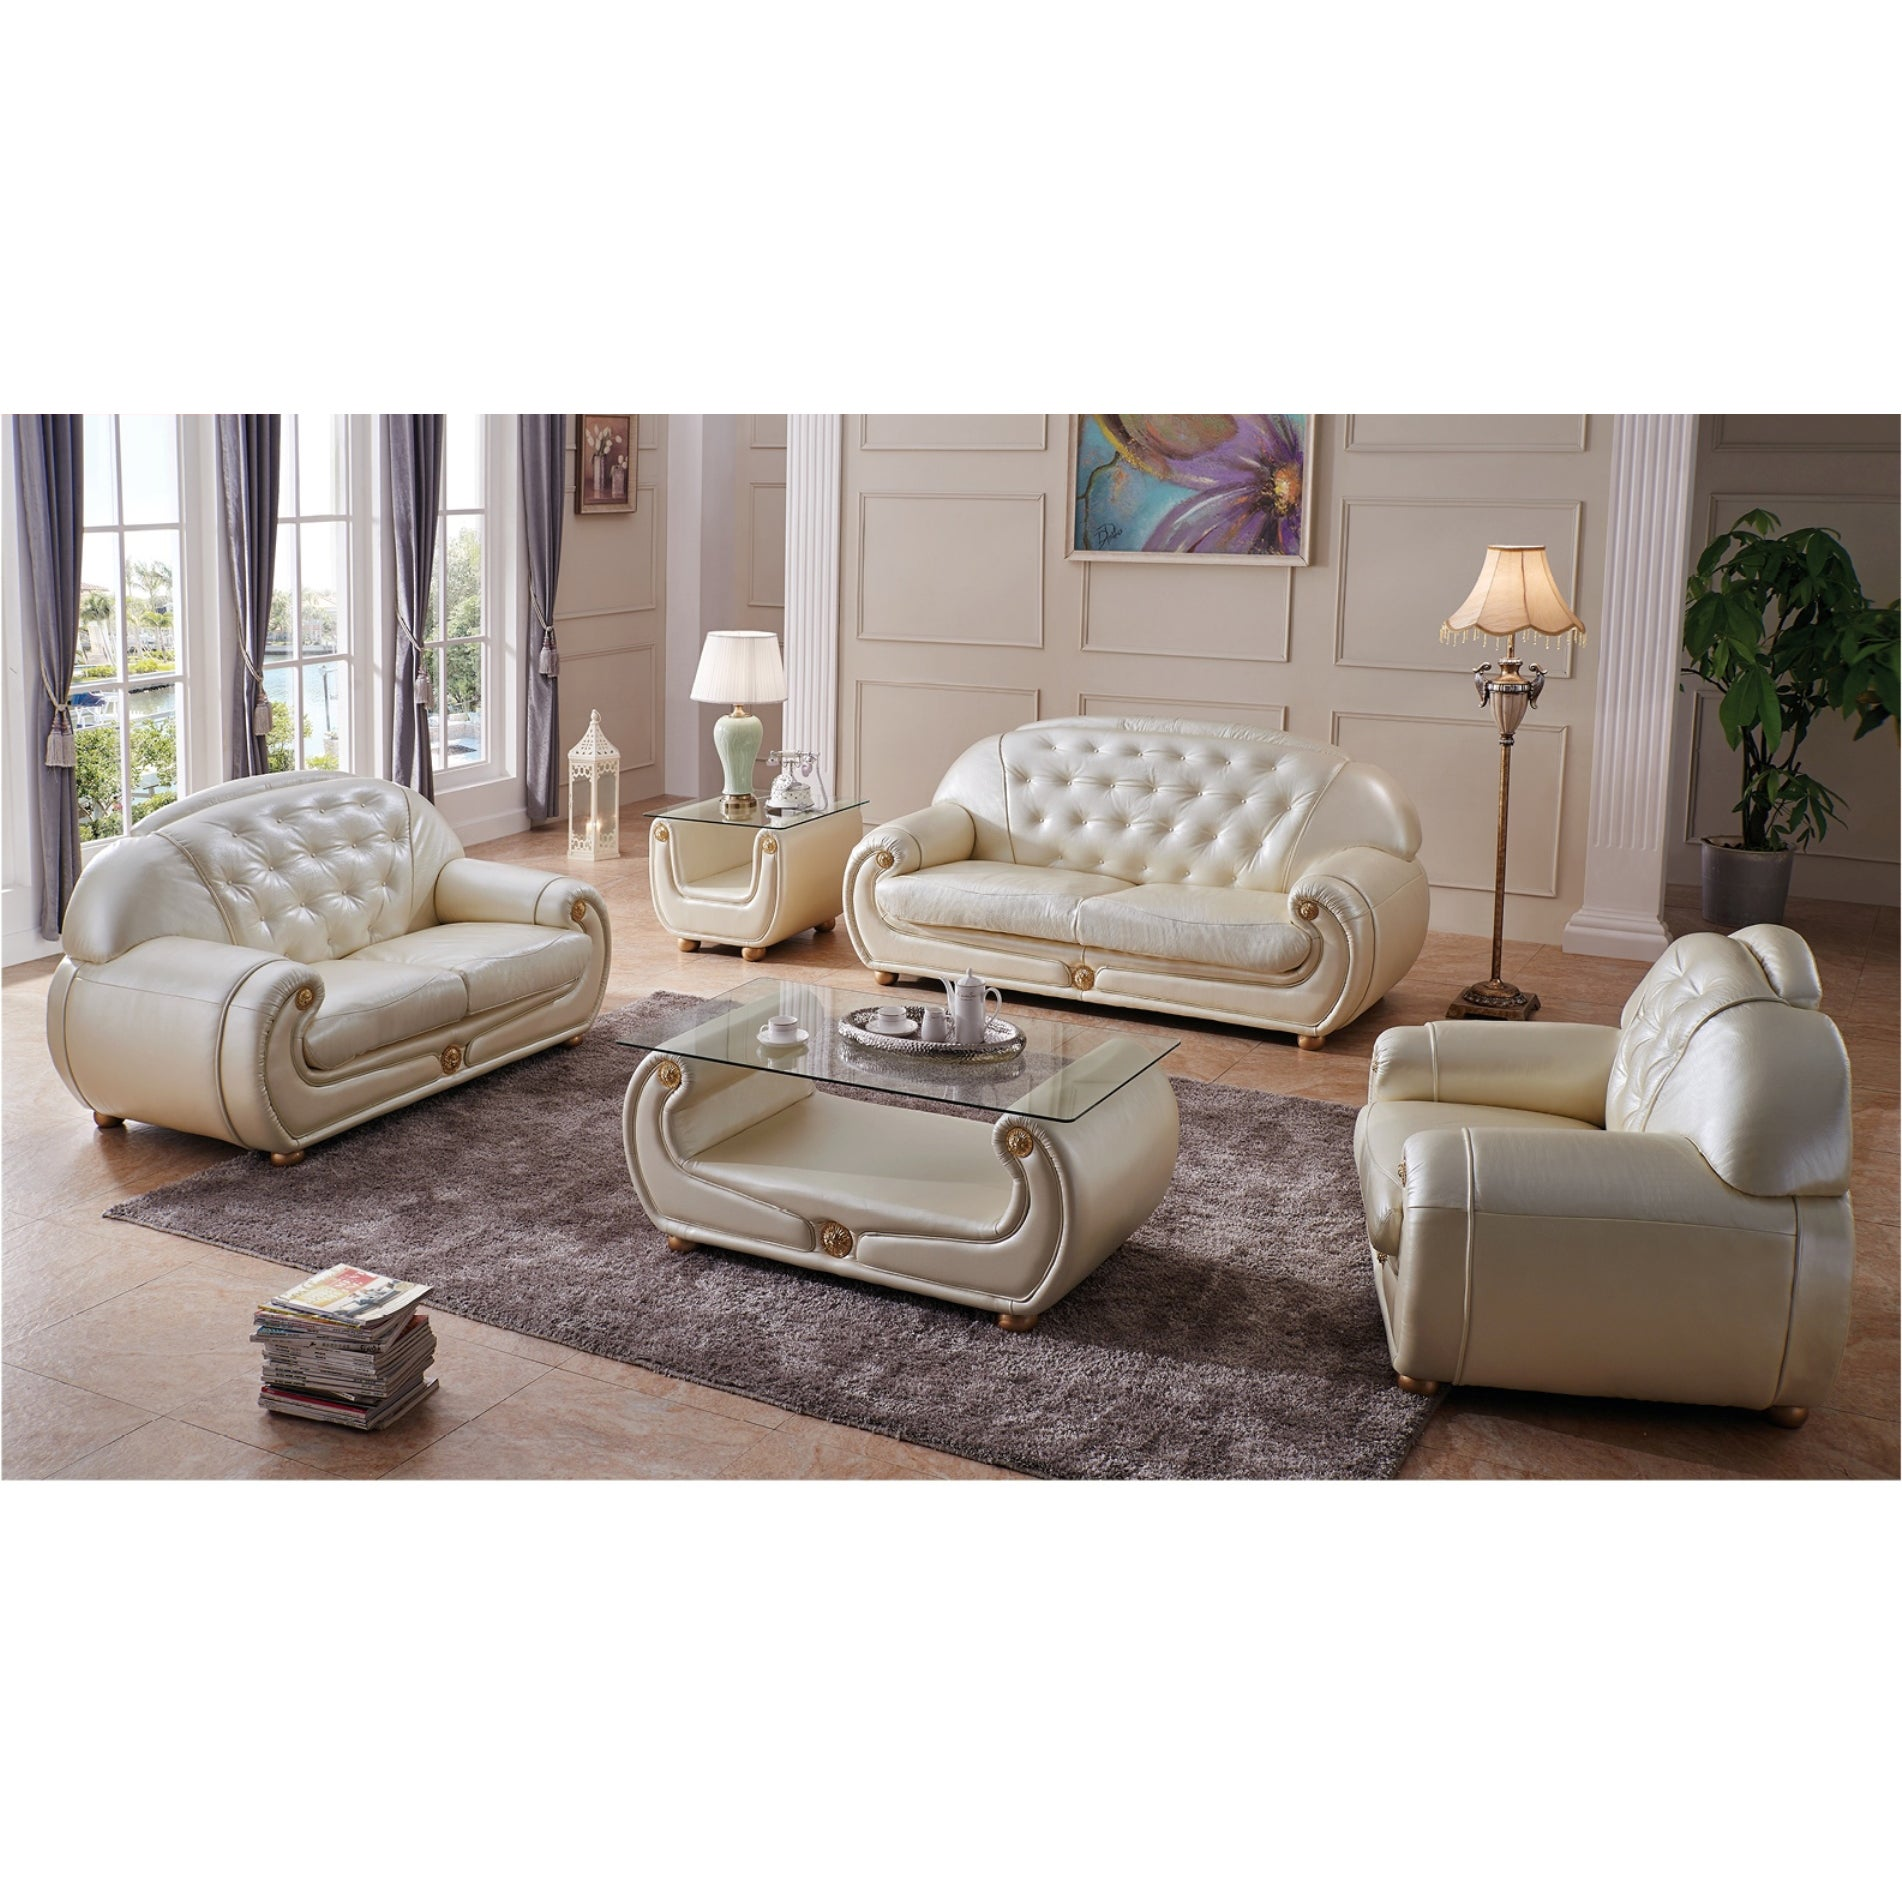 Luca Home Beige/Goldtone Eco-leather/Glass Coffee Table (...